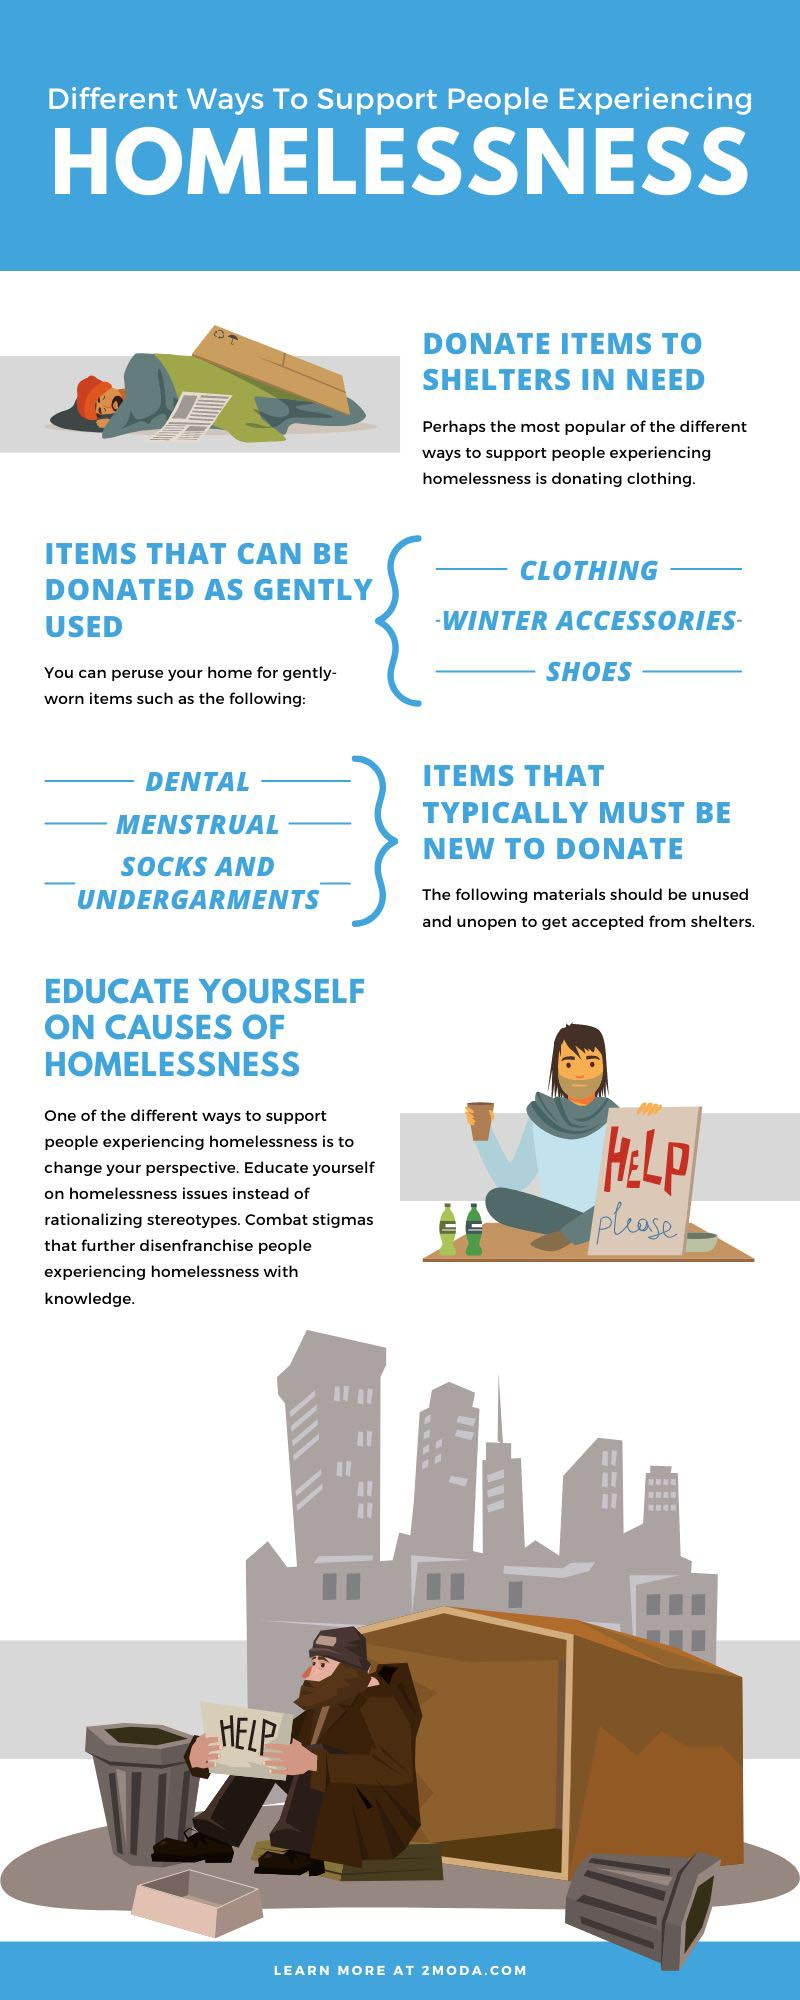 Different Ways To Support People Experiencing Homelessness